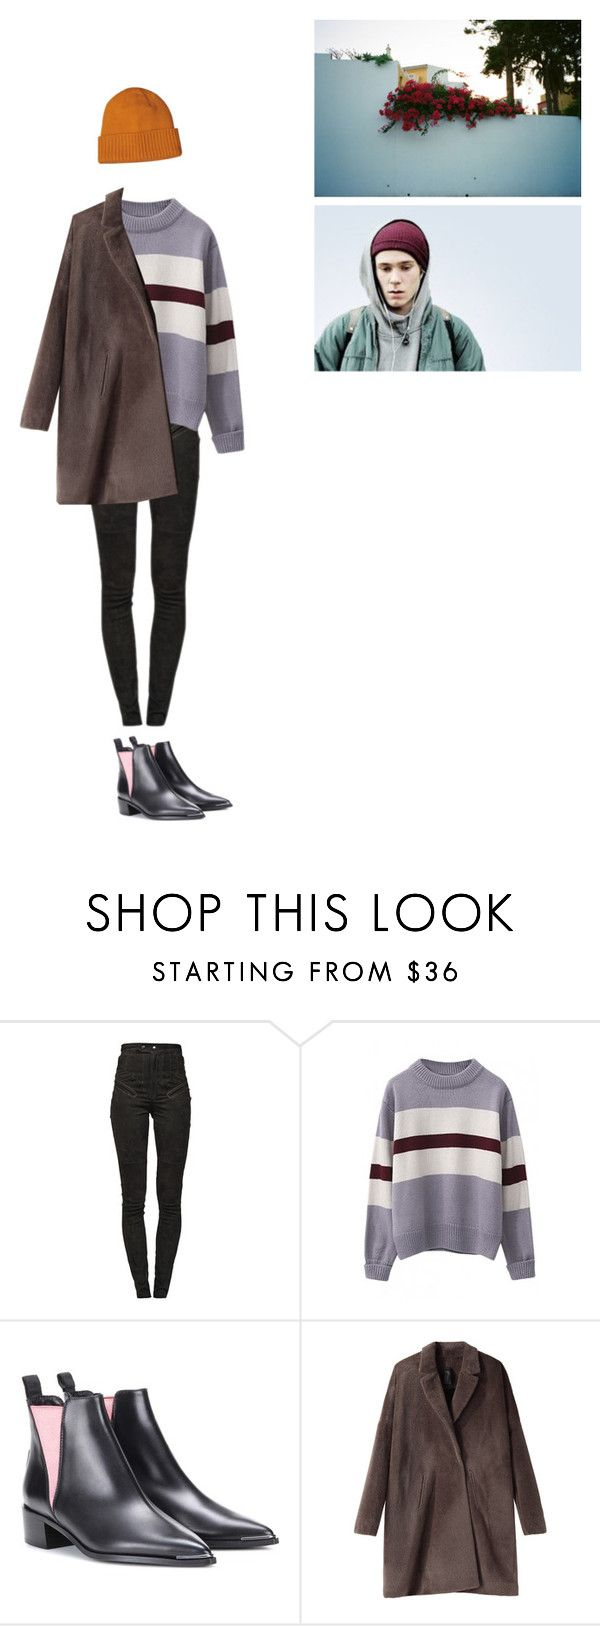 """Без названия #1916"" by asmin ❤ liked on Polyvore featuring Isabel Marant, WithChic, Acne Studios, Zero + Maria Cornejo, Patagonia, men's fashion, menswear, even, skam and isak"